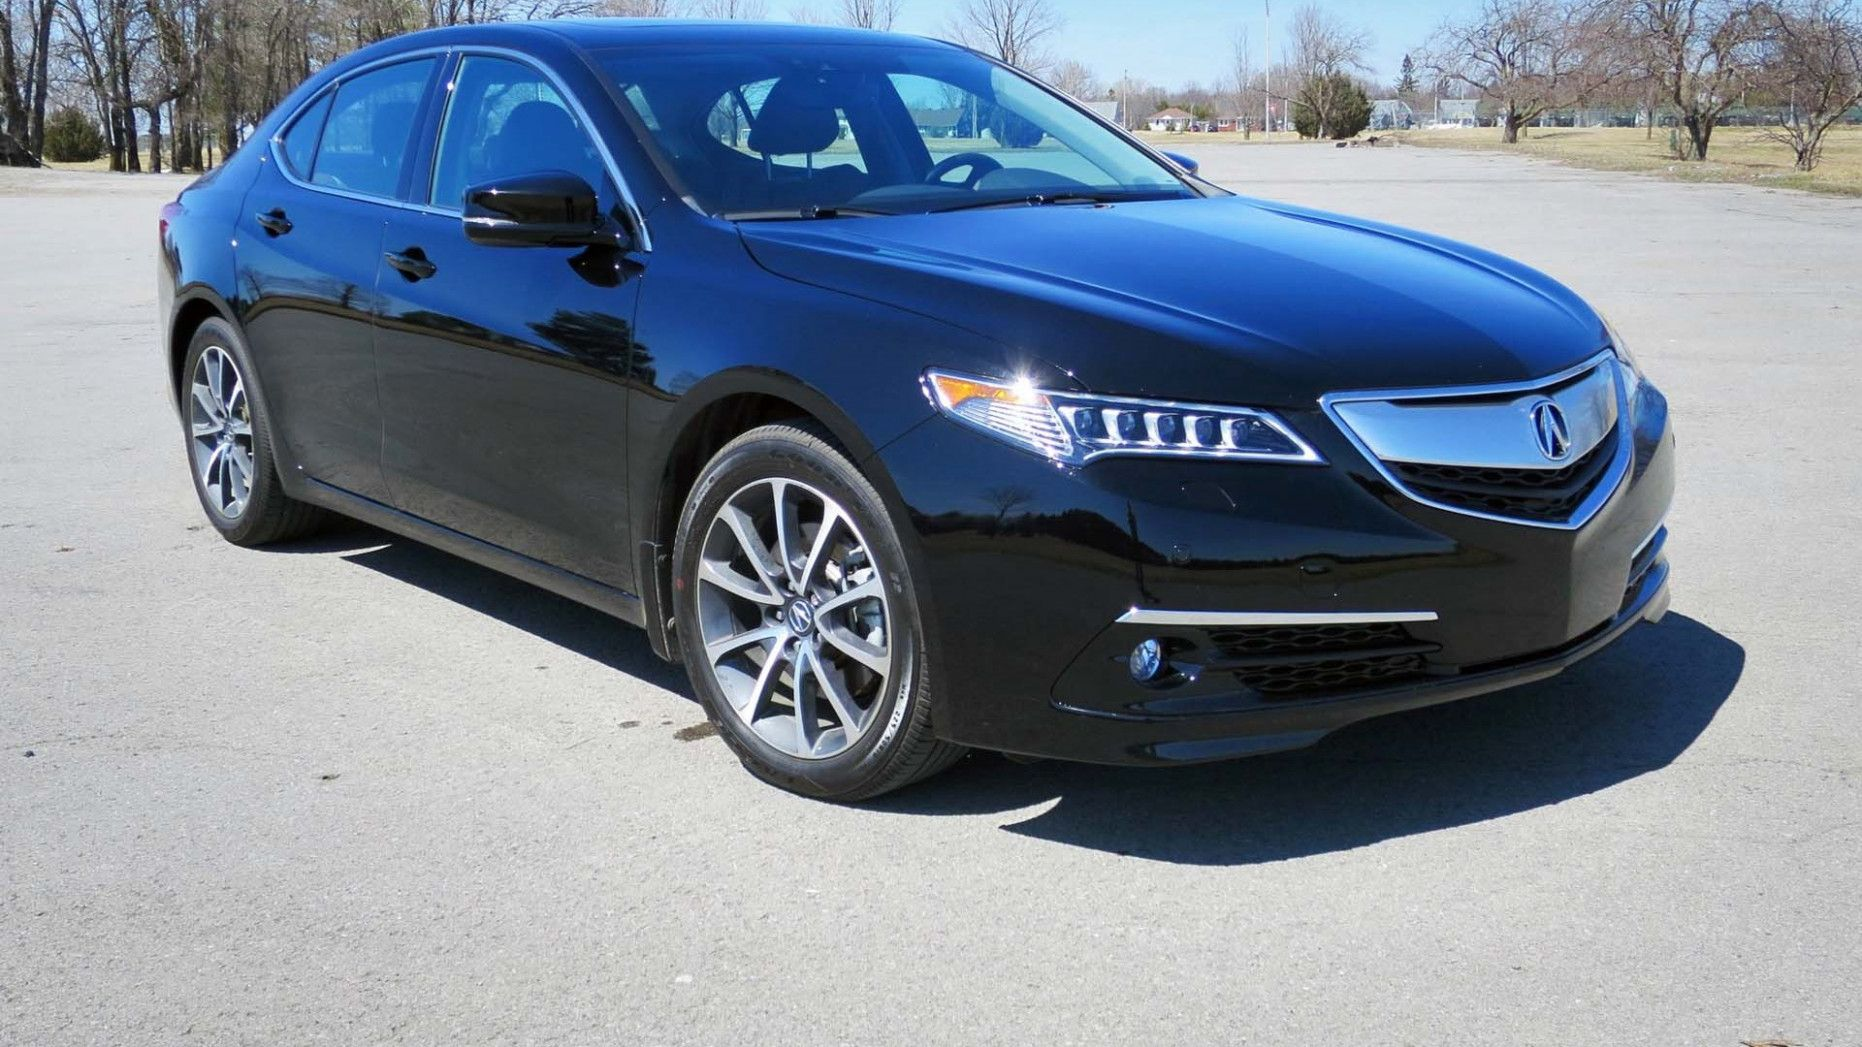 2021 Acura Tlx For Sale Images Acura Tlx Acura Acura Tsx